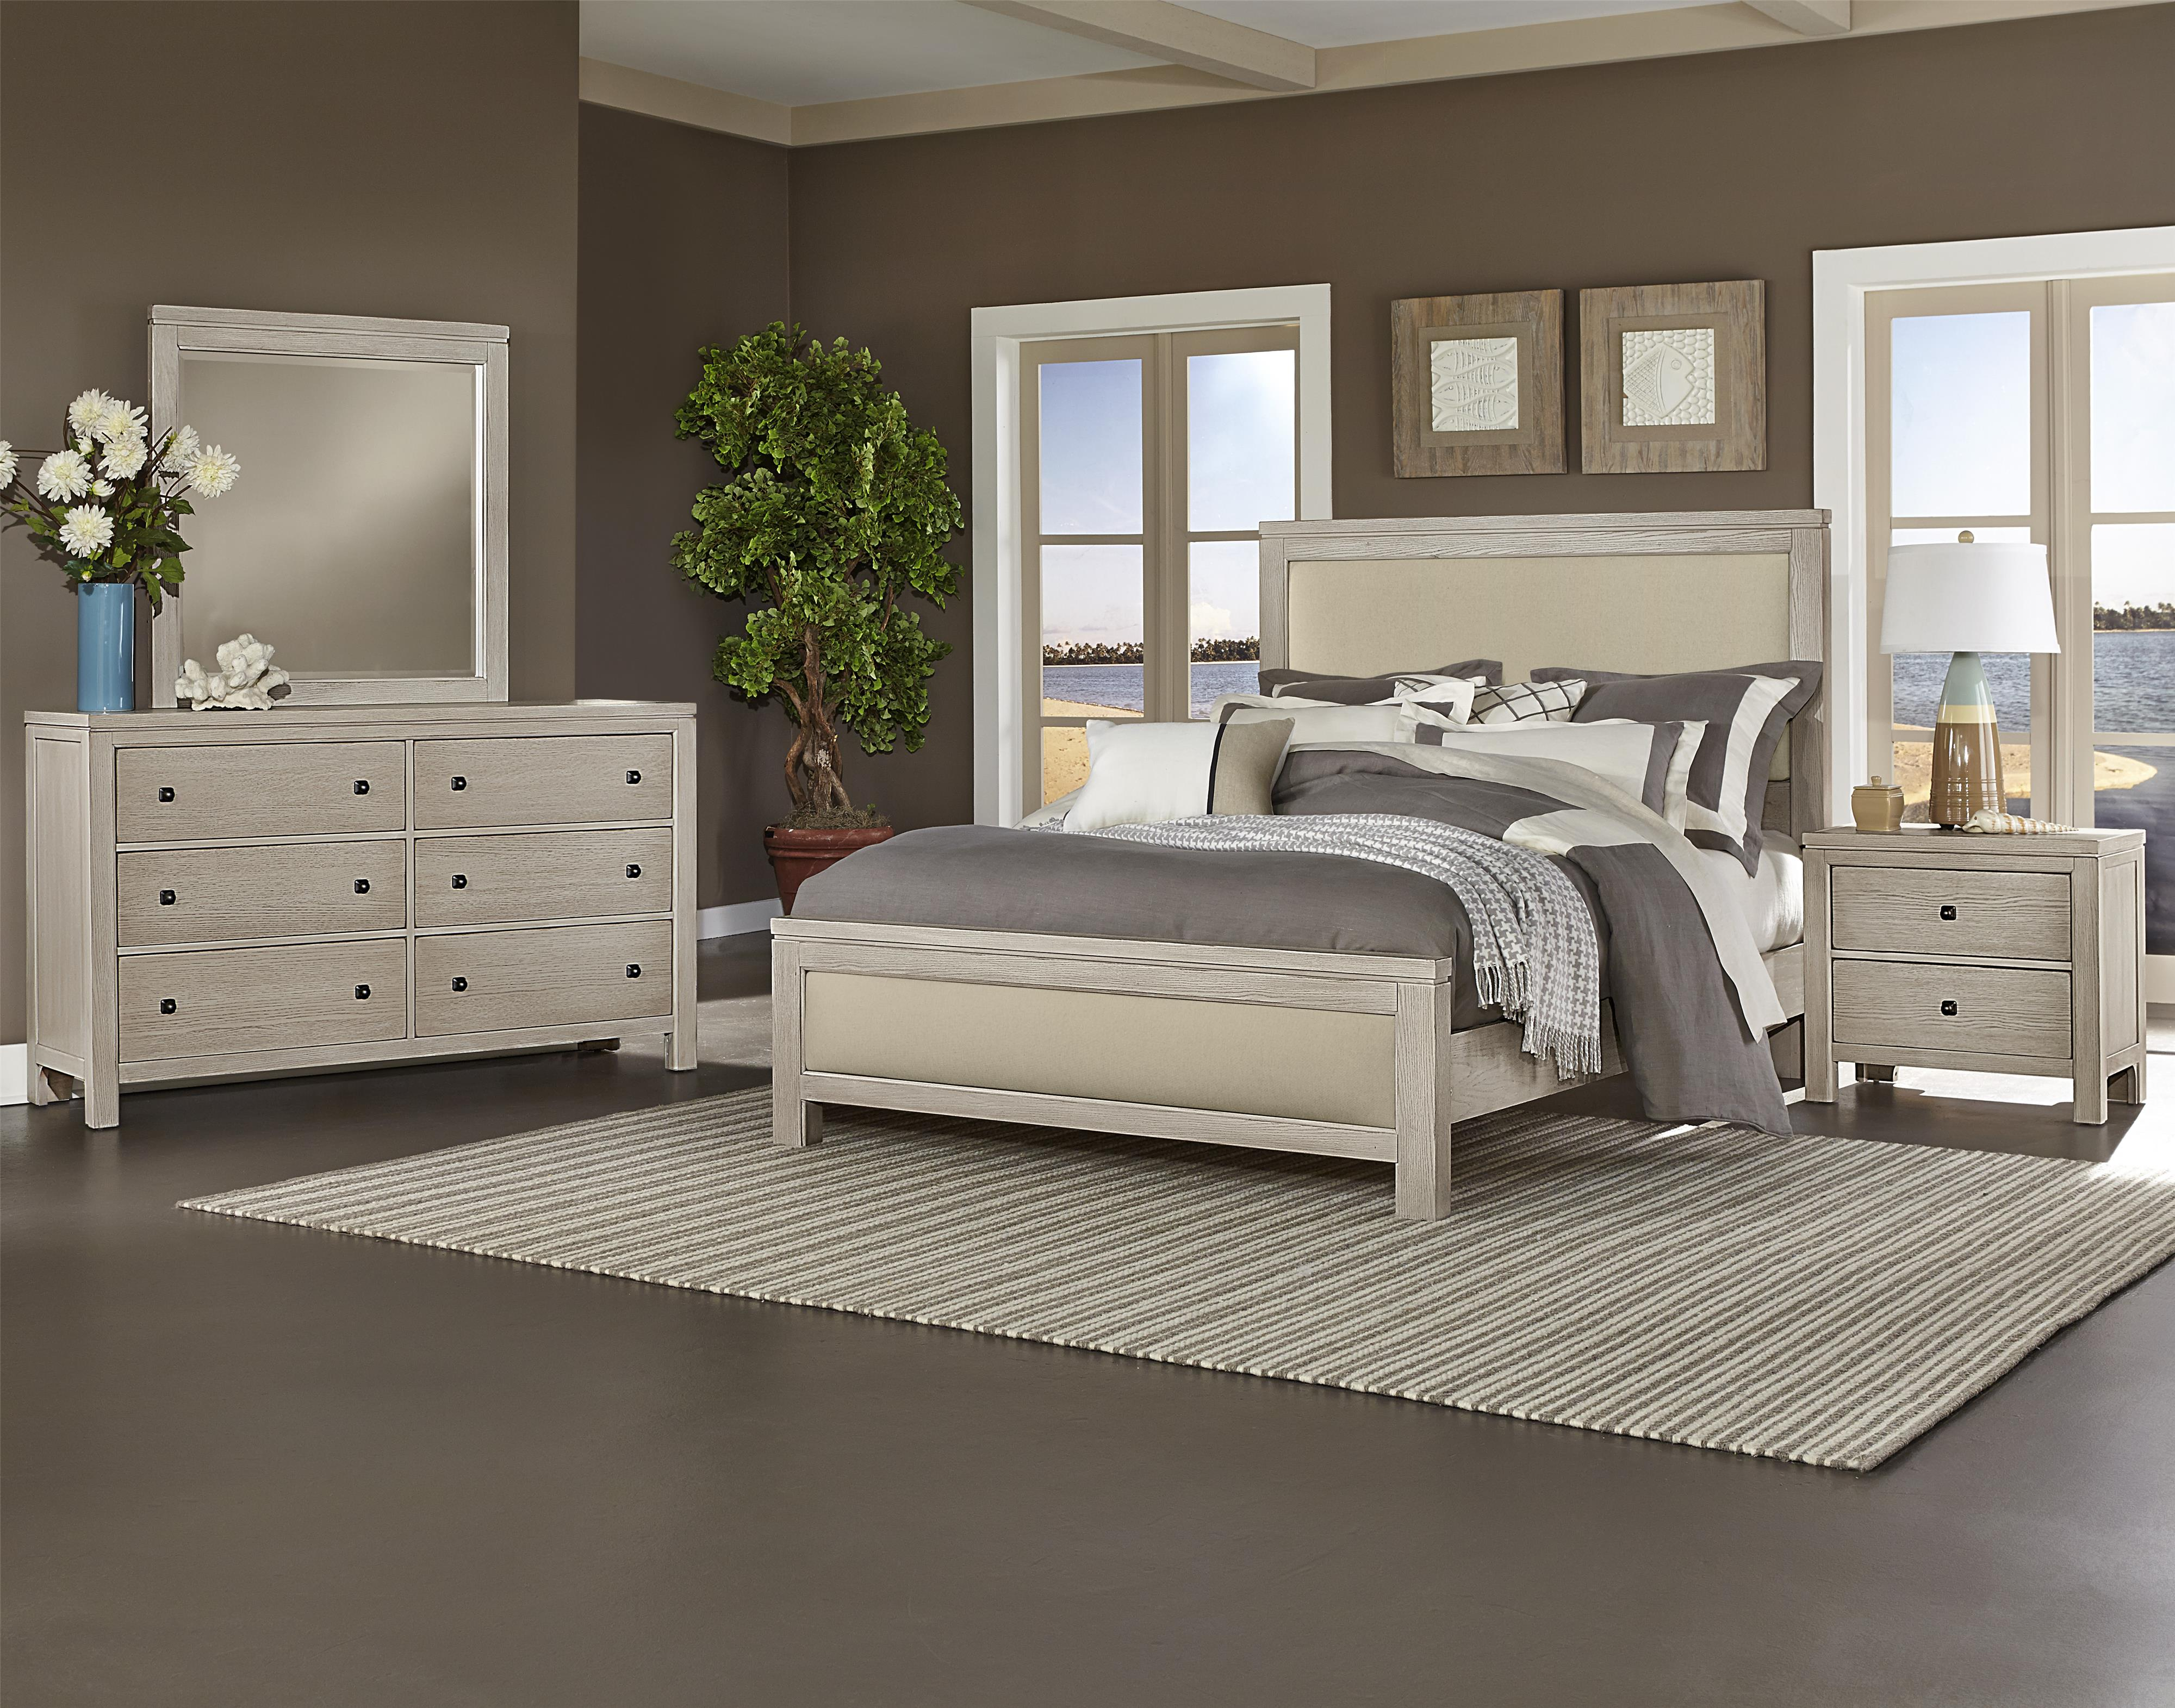 Vaughan Bassett Kismet King Bedroom Group - Item Number: 412 K Bedroom Group 2